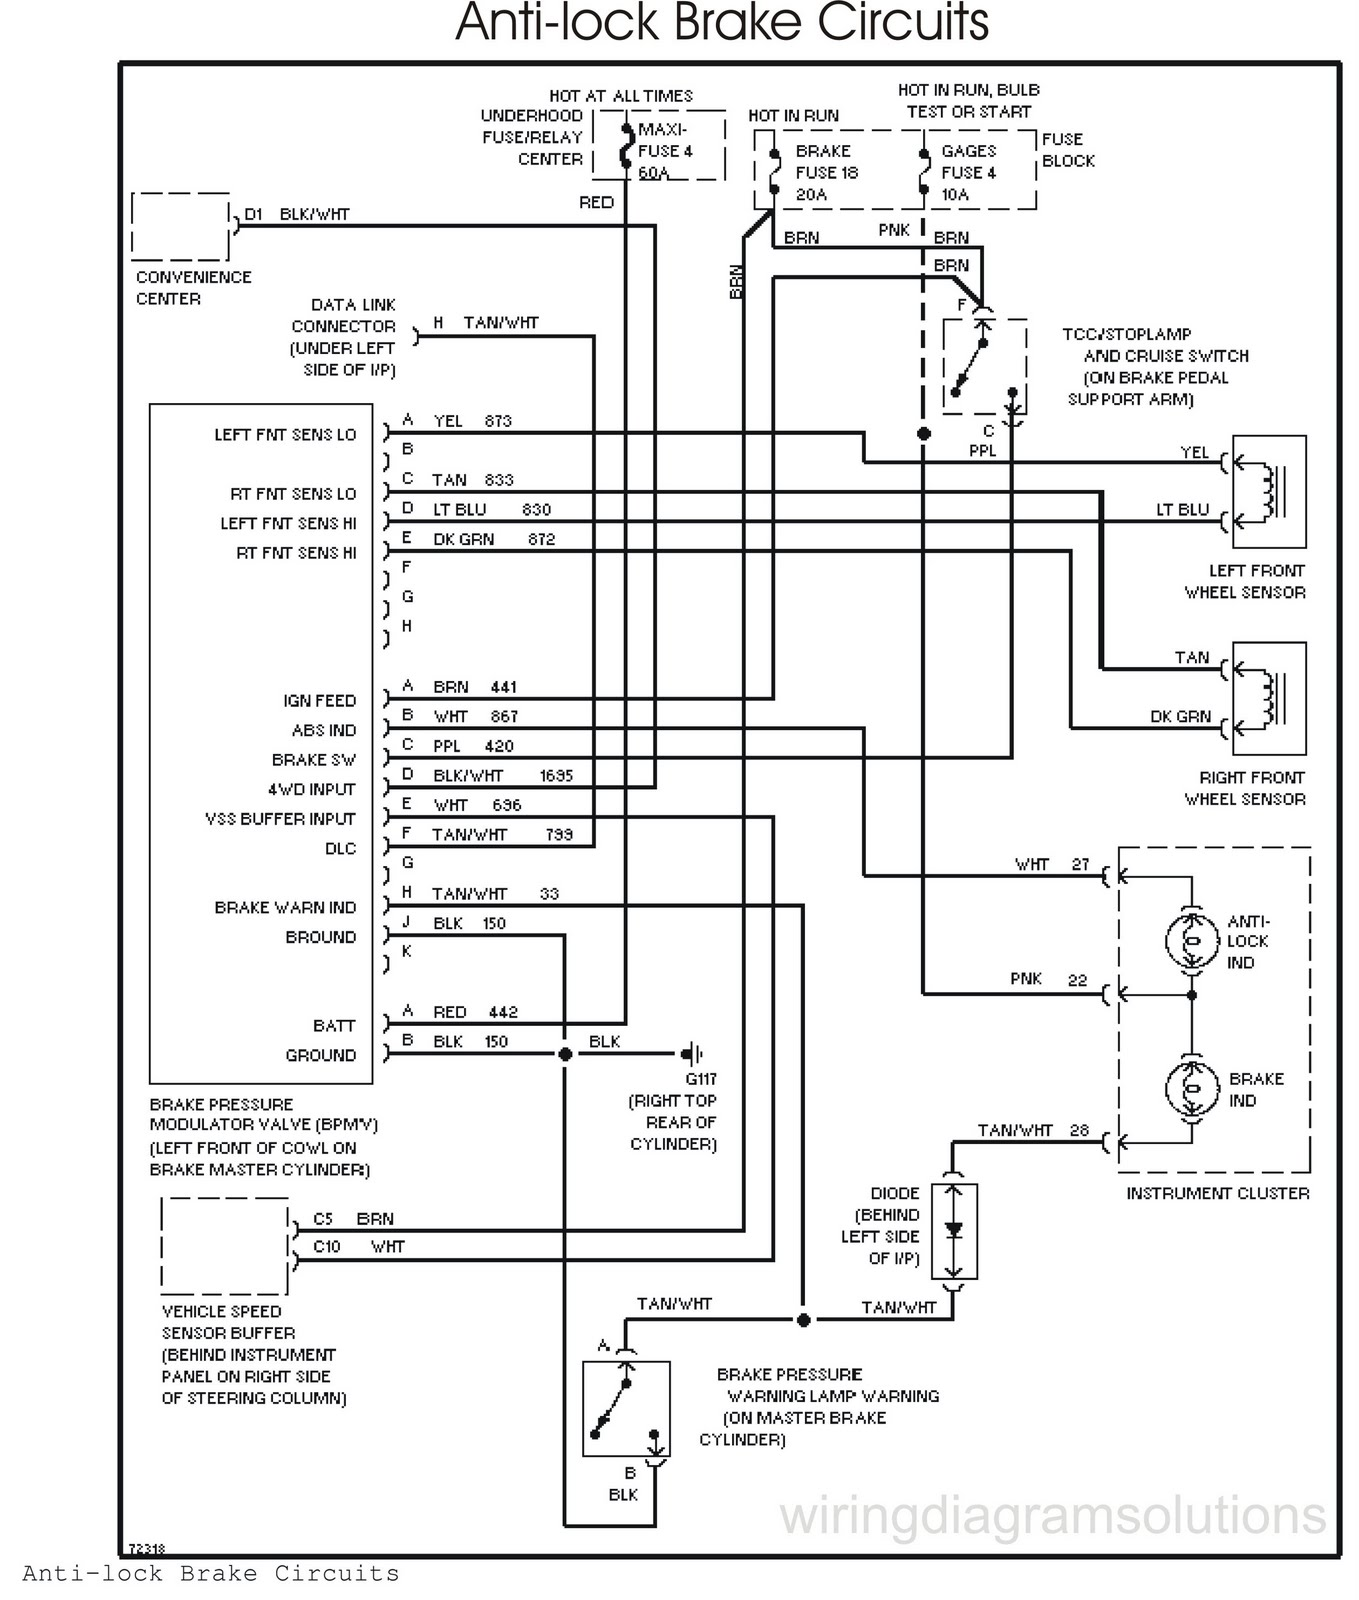 The Chevrolet Tahoe Wiring Schematic Anti Lock Brake Circuits Images